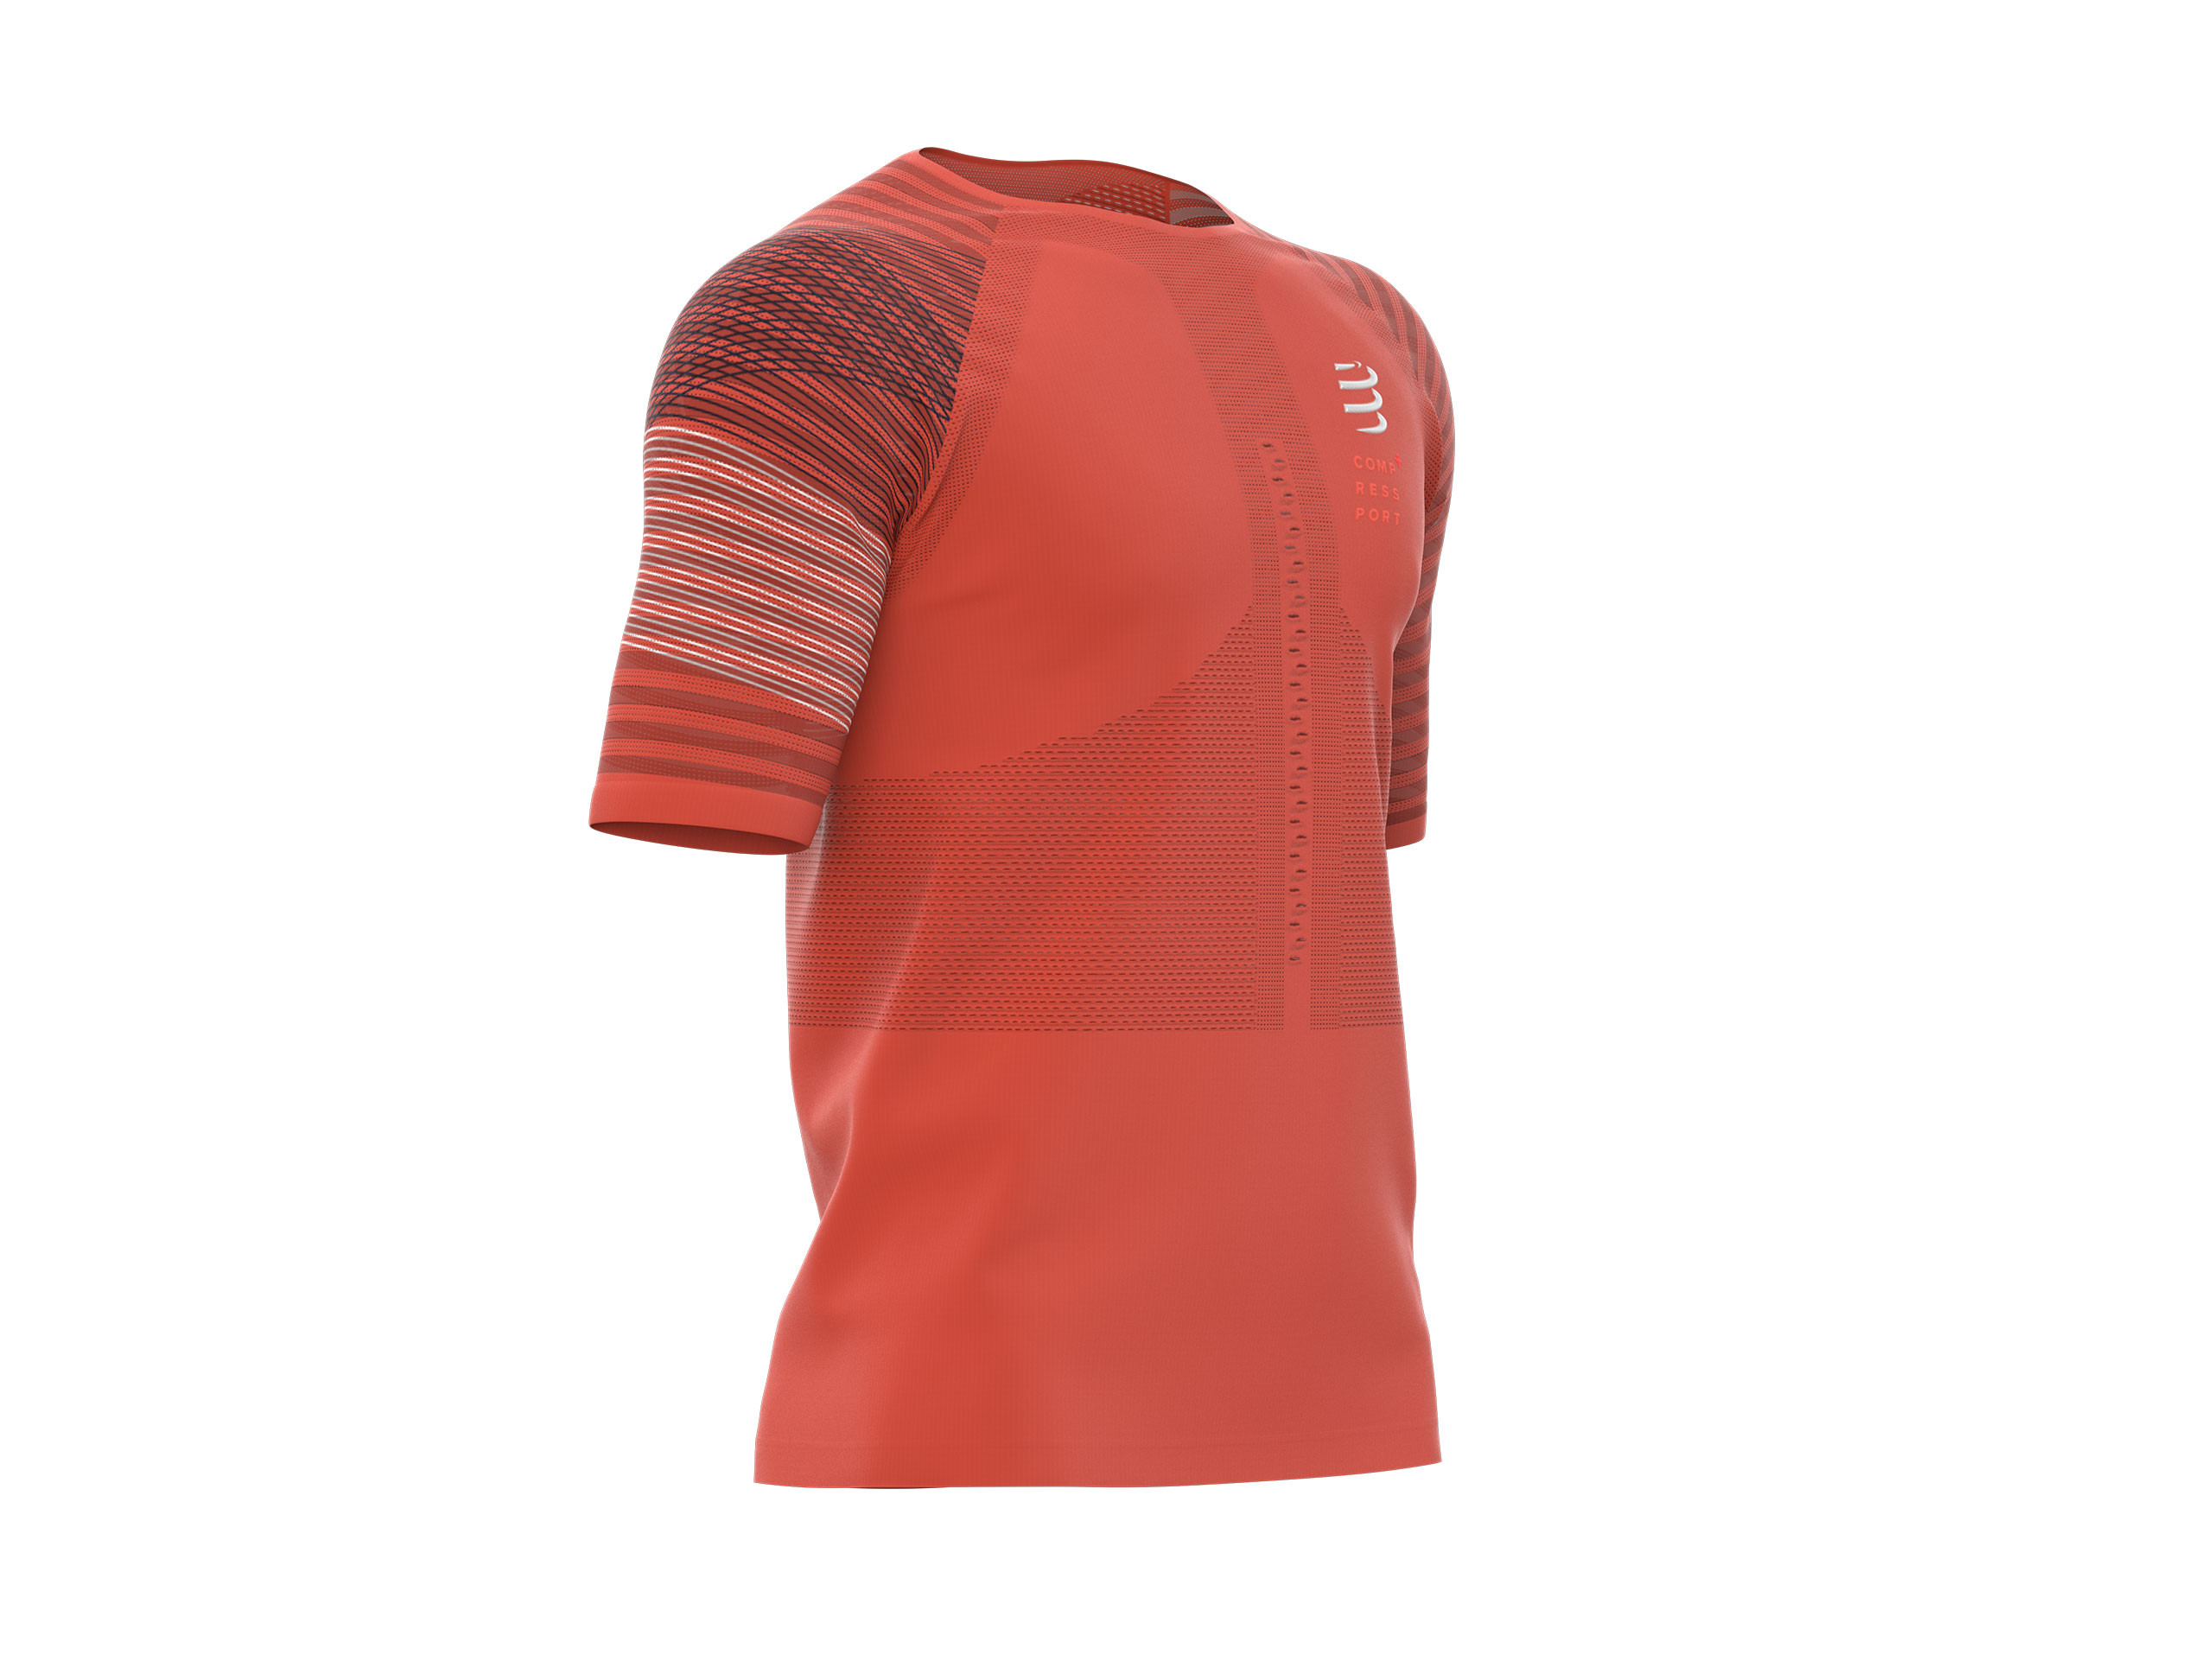 Homme M Tshirt Rouge Compressport Ss Running L 7gb6yyvf Racing LpMSqUzGV